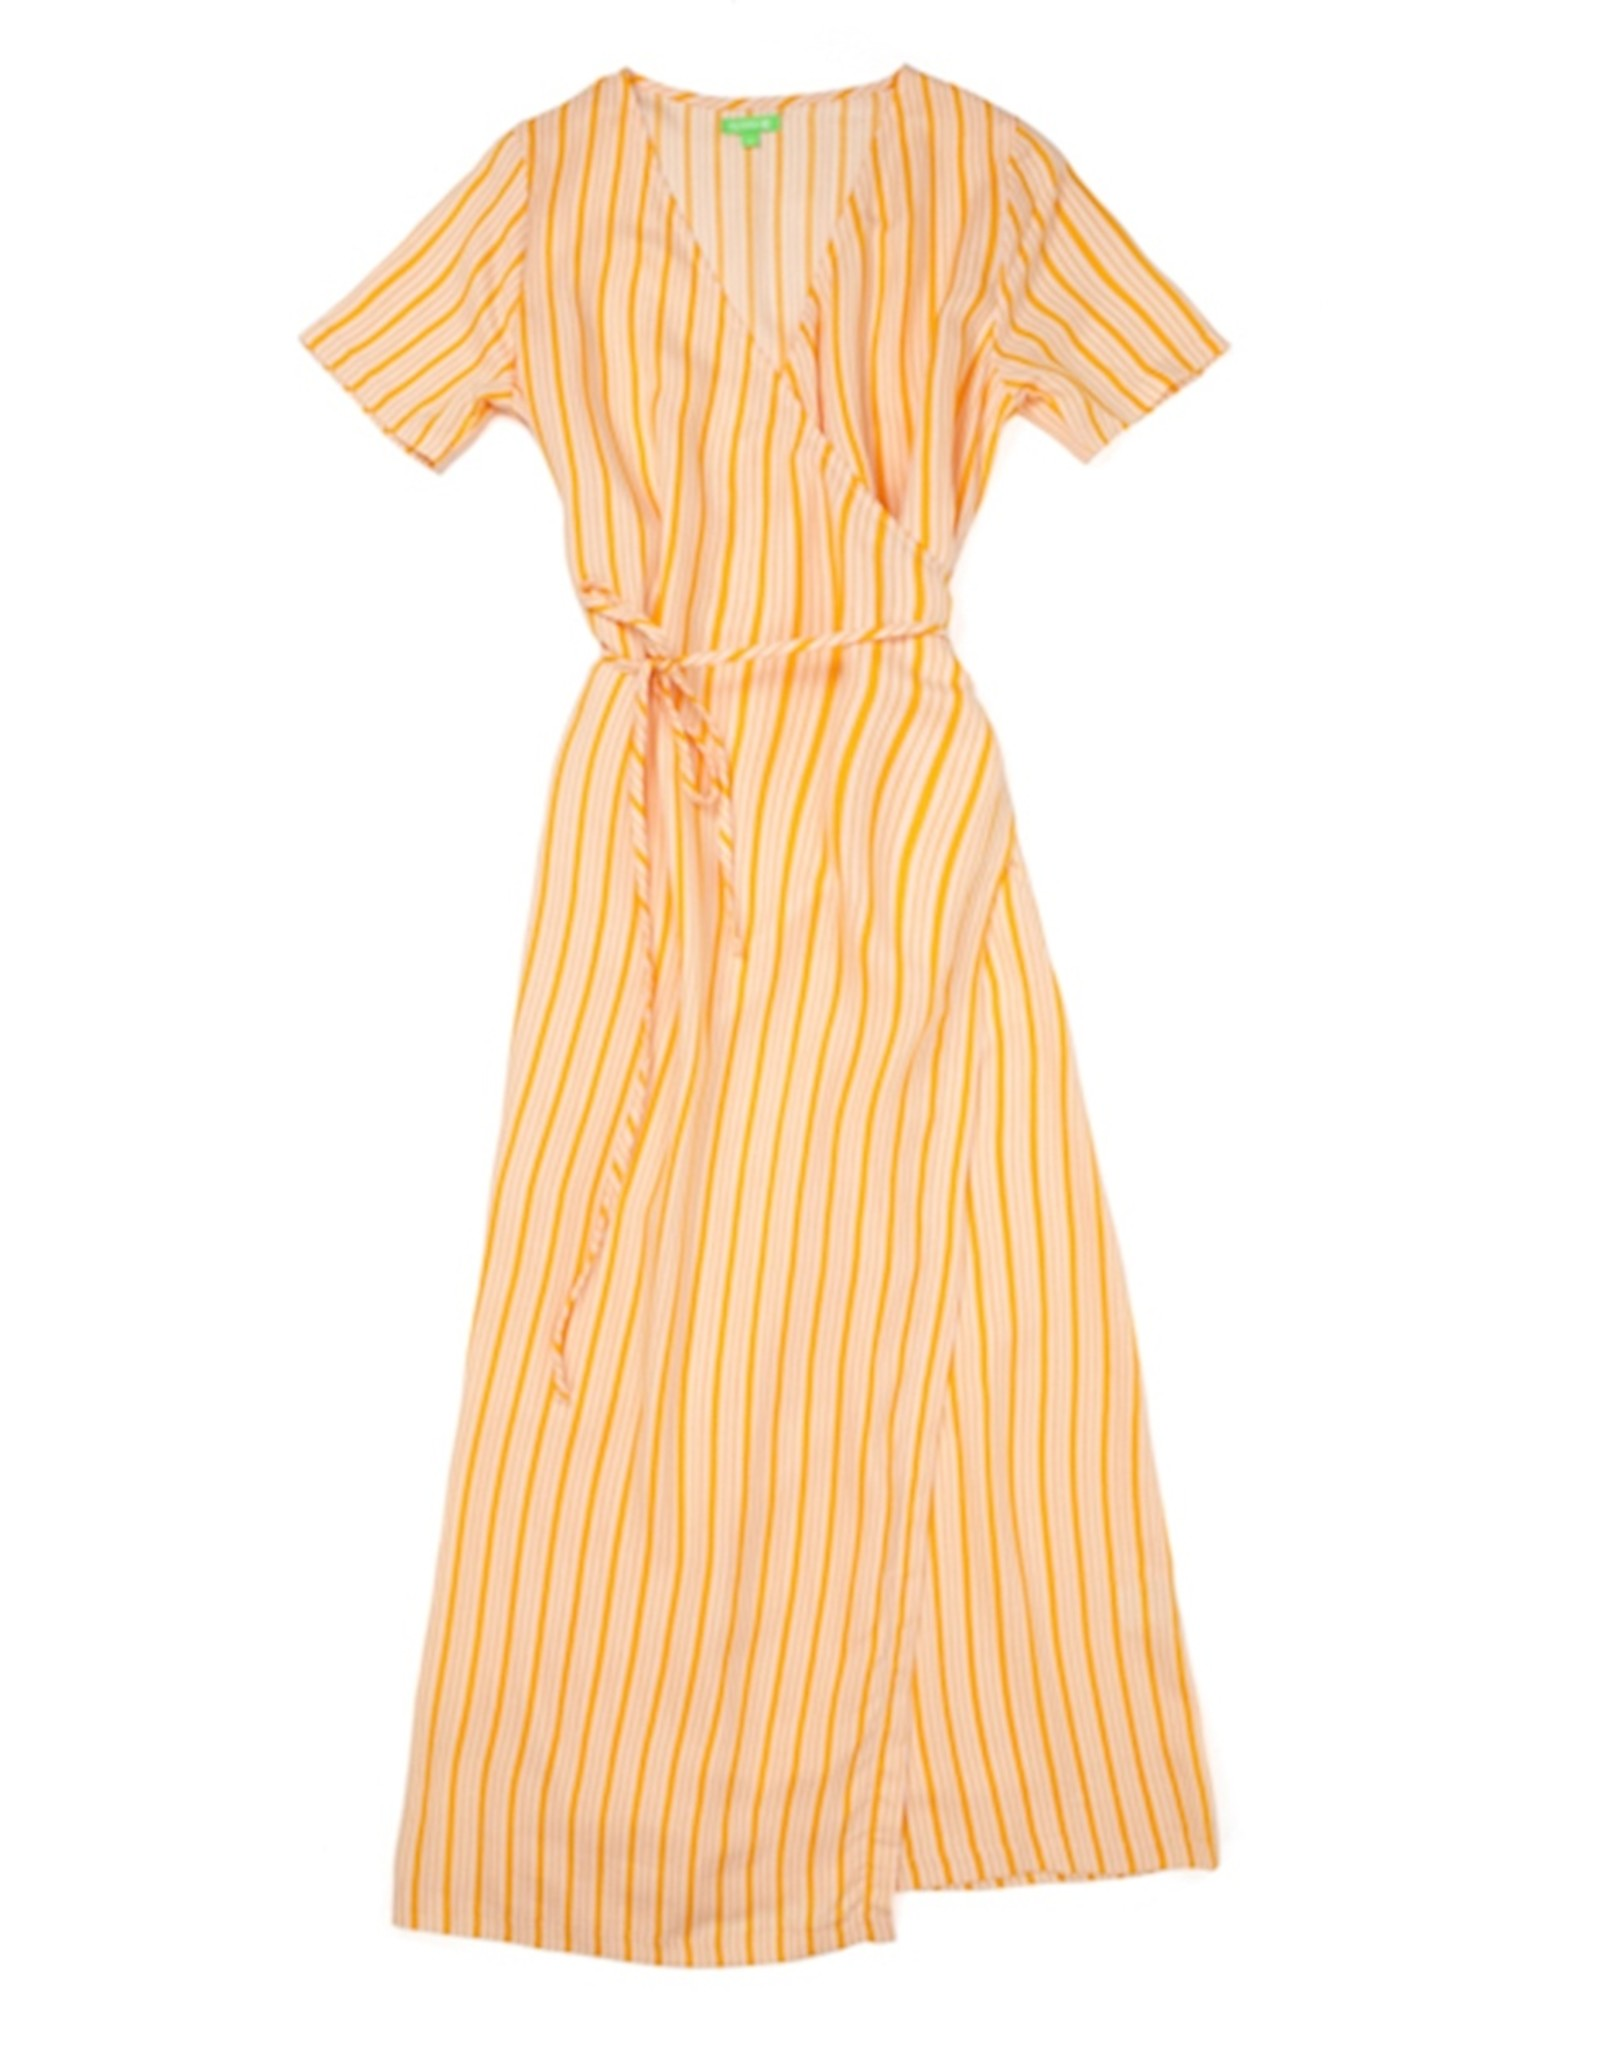 Lily-Balou Women LANGE WIKKELJURK JUICY STRIPES SOPHIA